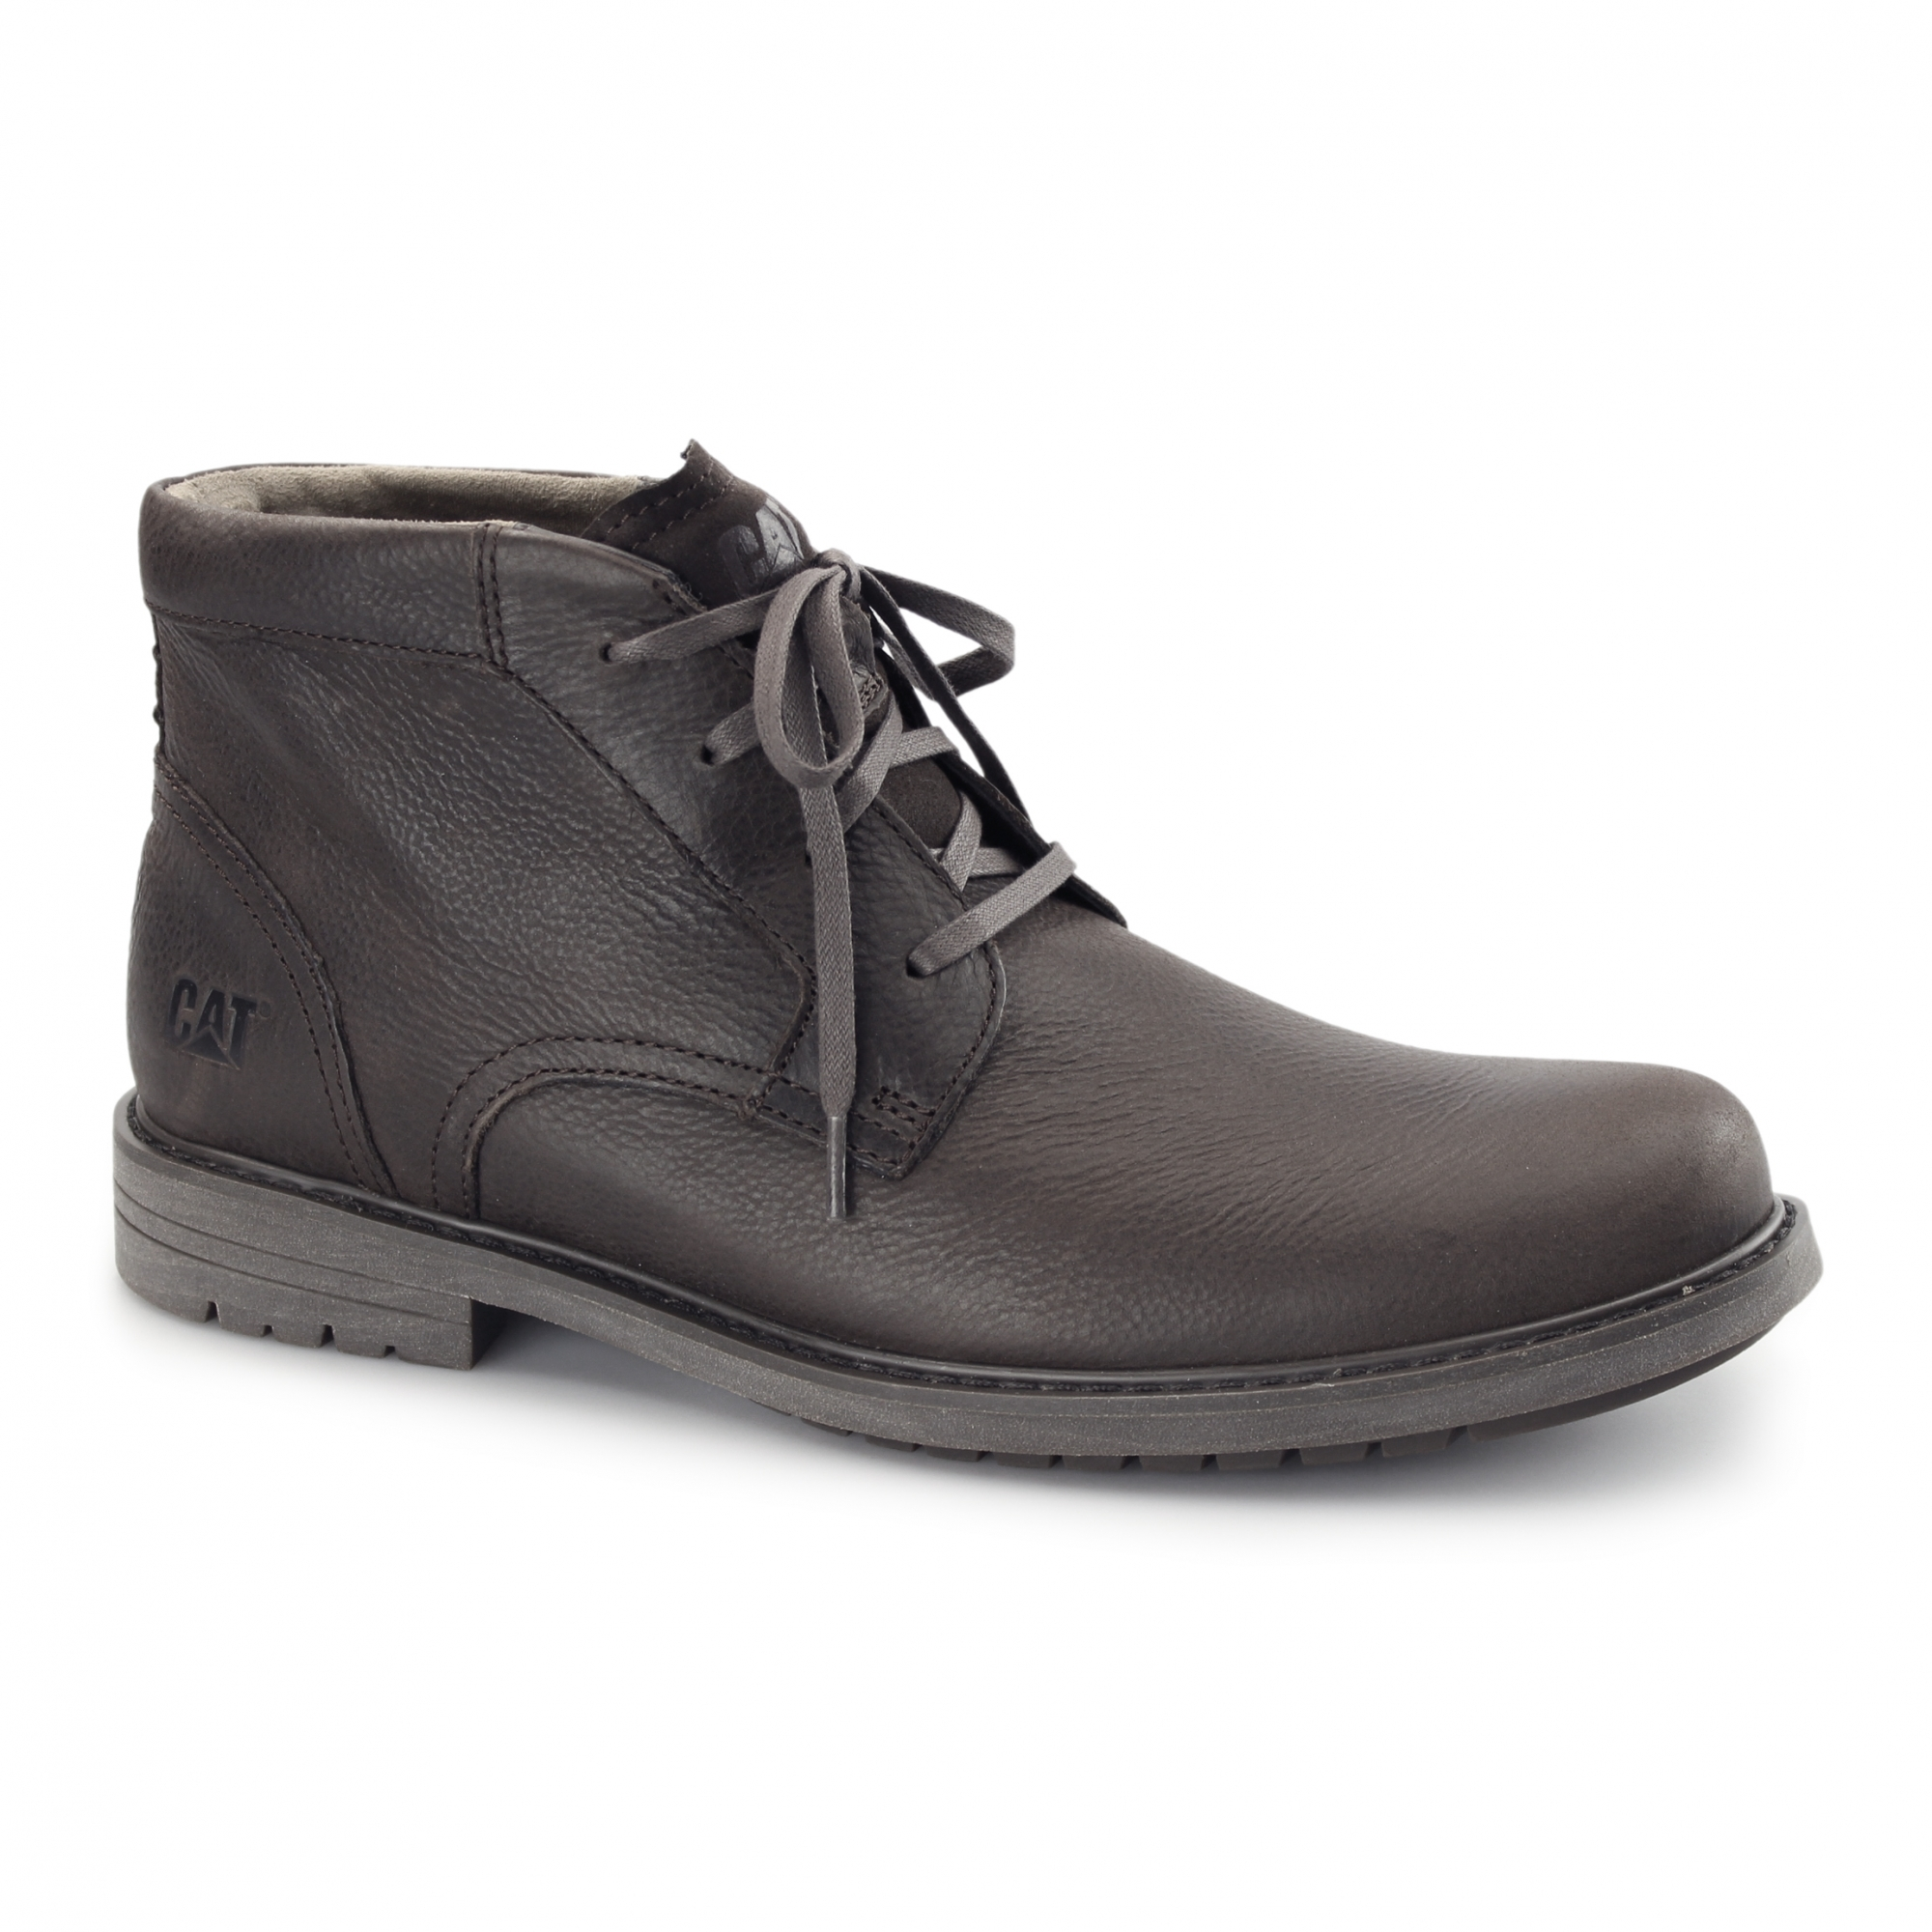 Mens stylish winter boots